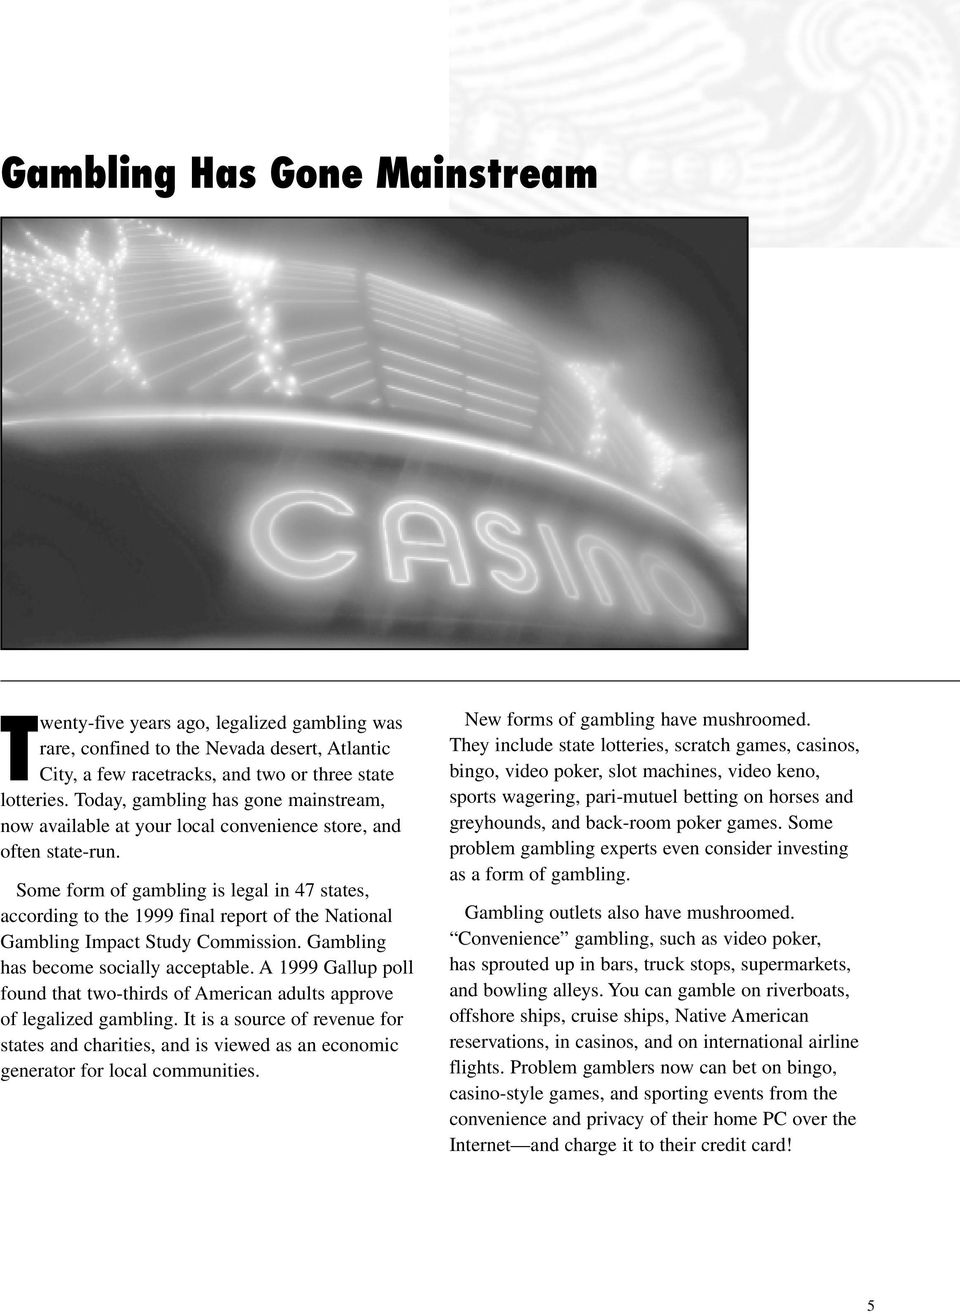 Some form of gambling is legal in 47 states, according to the 1999 final report of the National Gambling Impact Study Commission. Gambling has become socially acceptable.